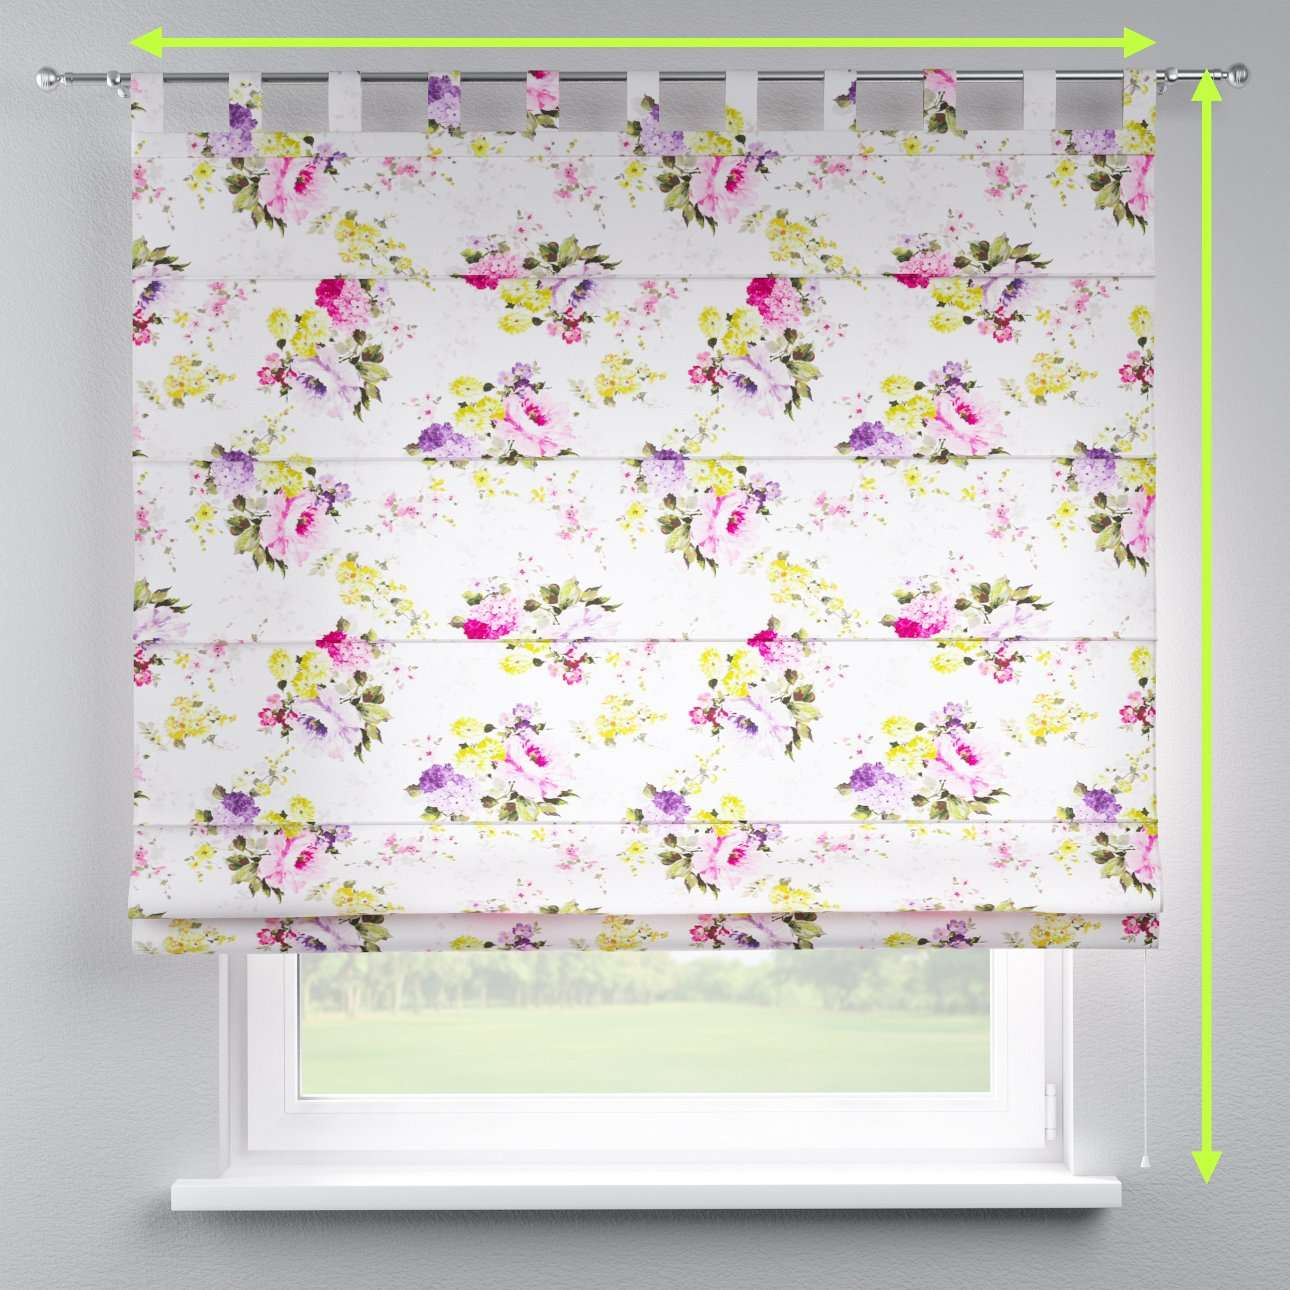 Verona tab top roman blind in collection Monet, fabric: 140-00